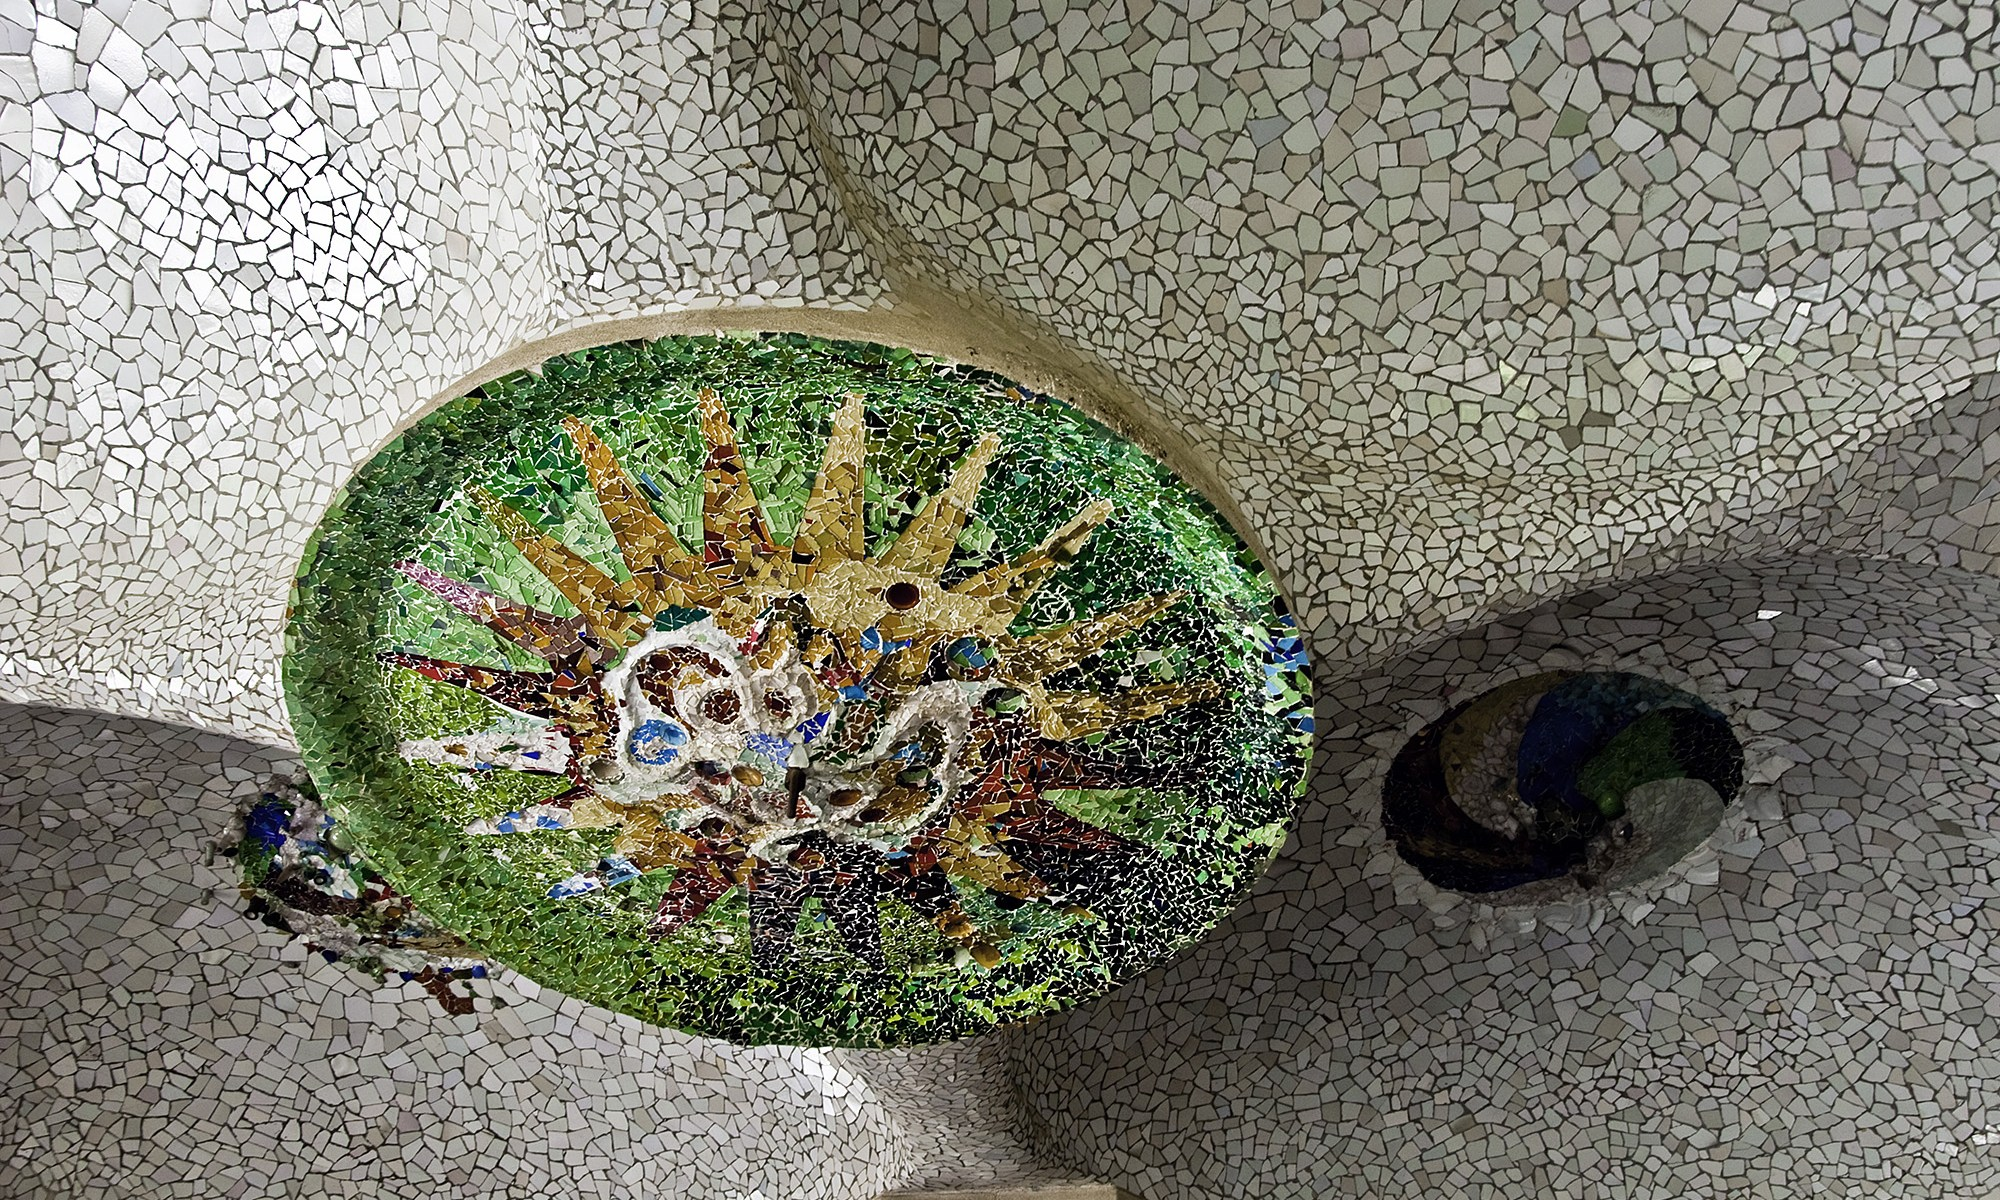 Gaudi's Tiled Mosaic at Park Guell